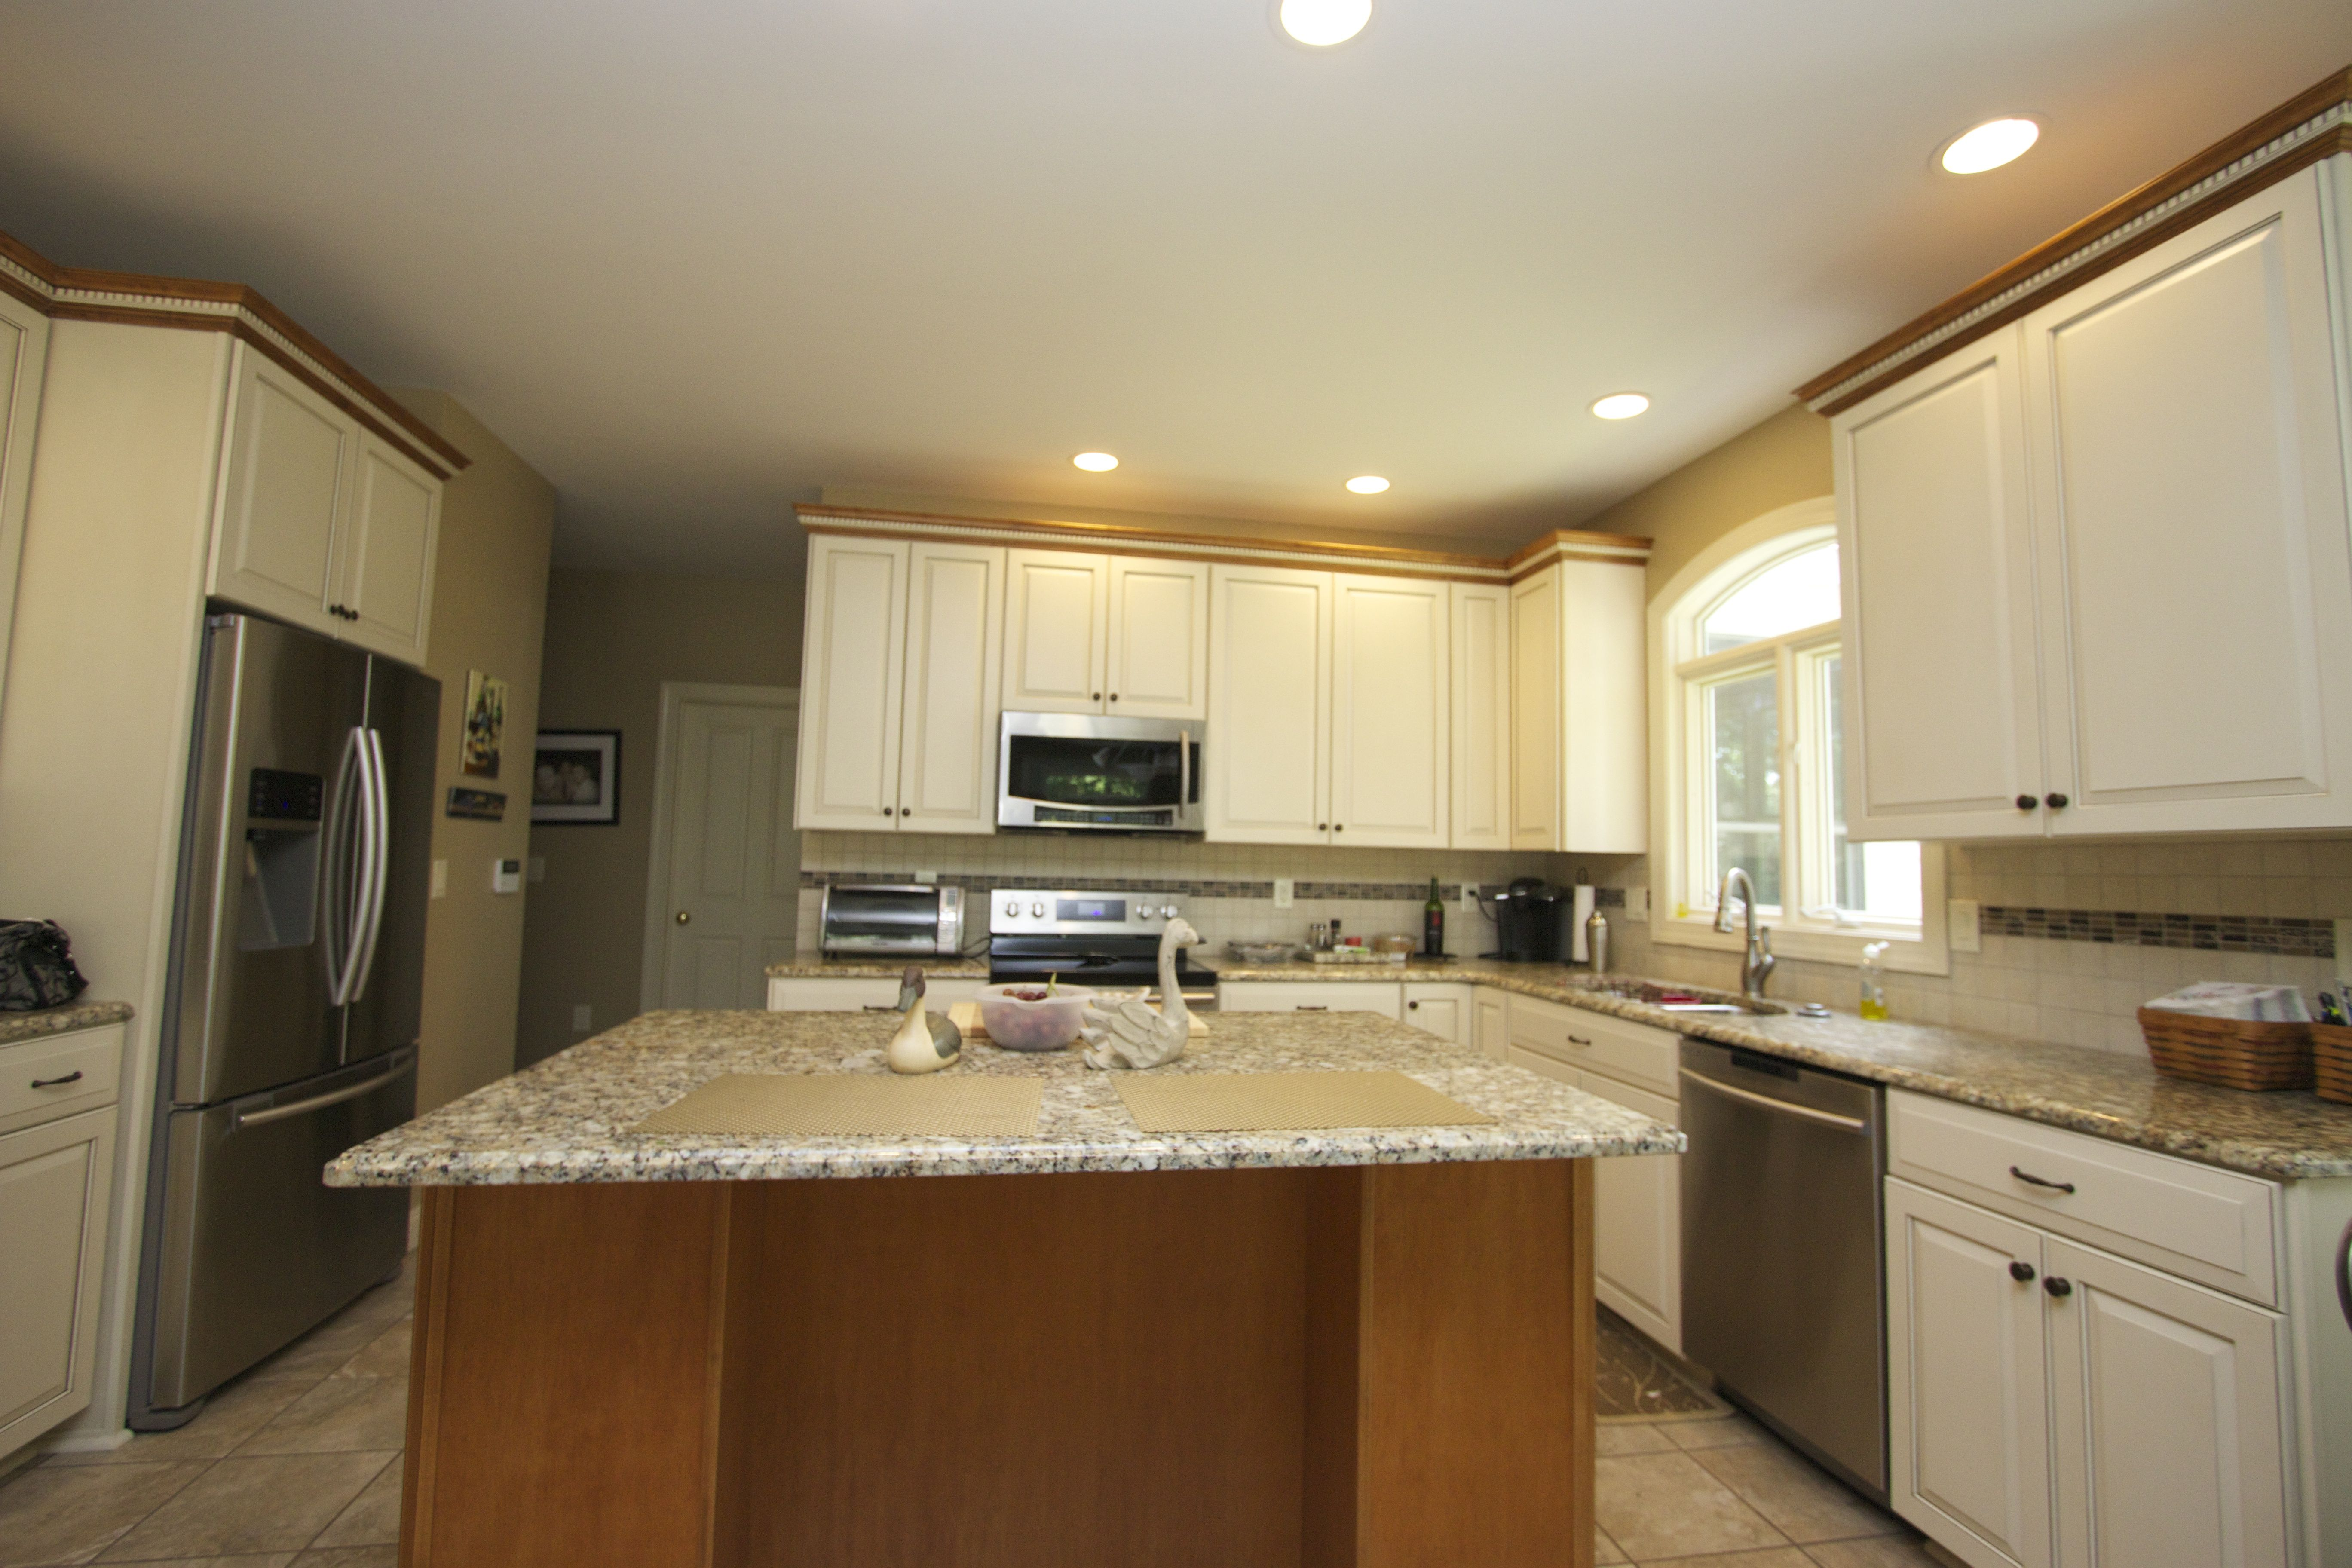 Transitional style kitchen in maple wood with crystal white stain